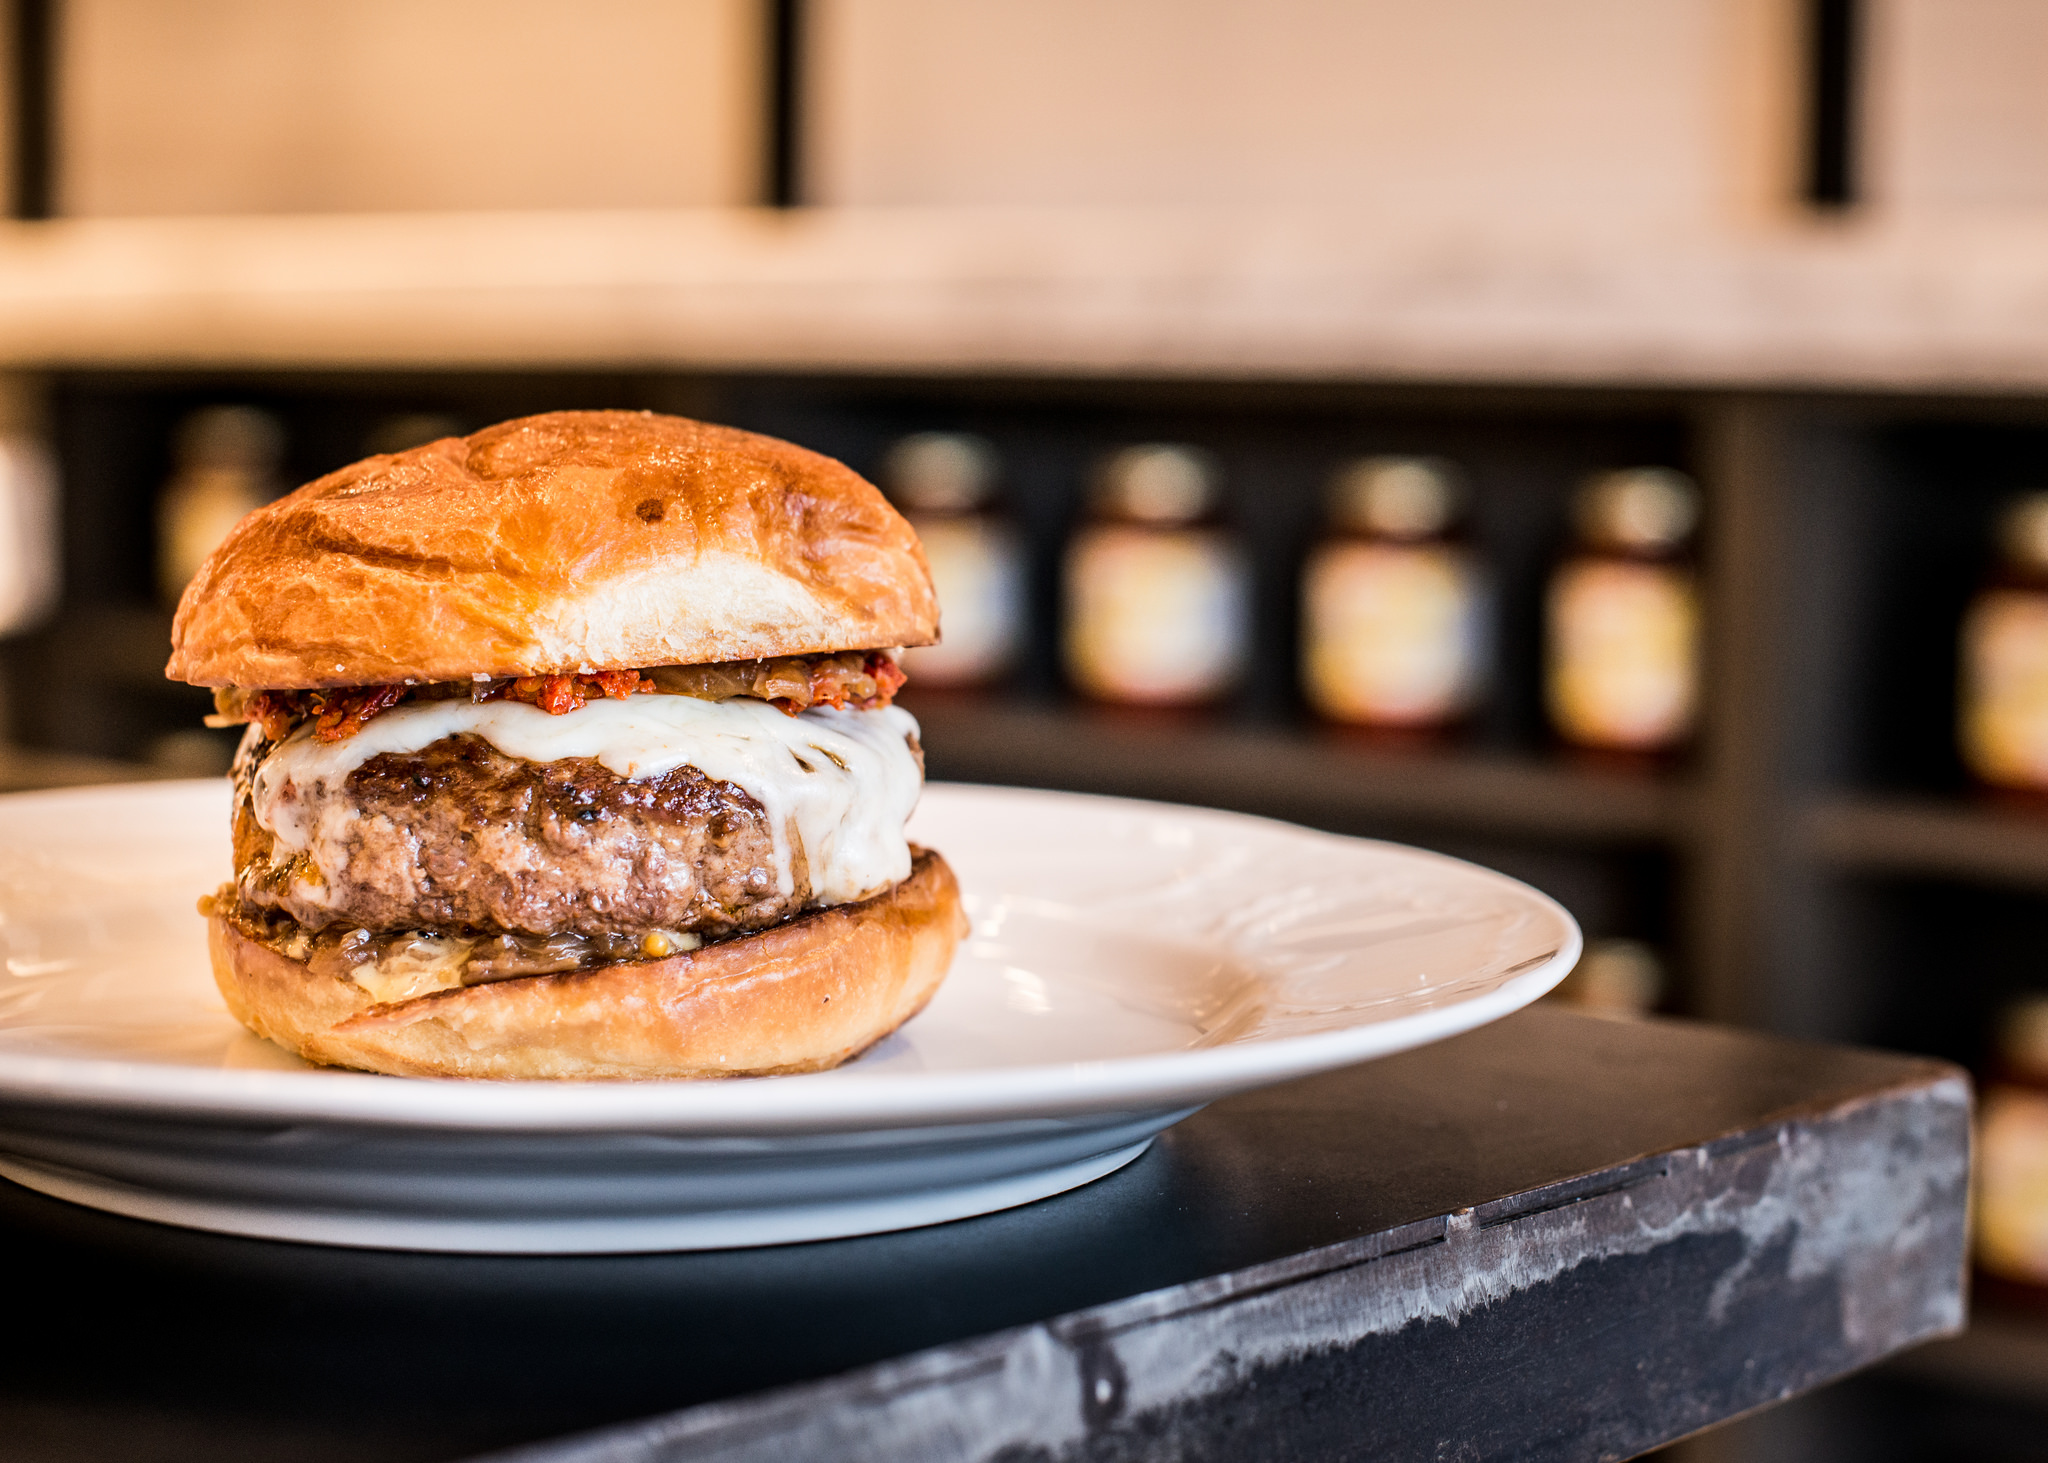 Formento's Juicy Lucy burger